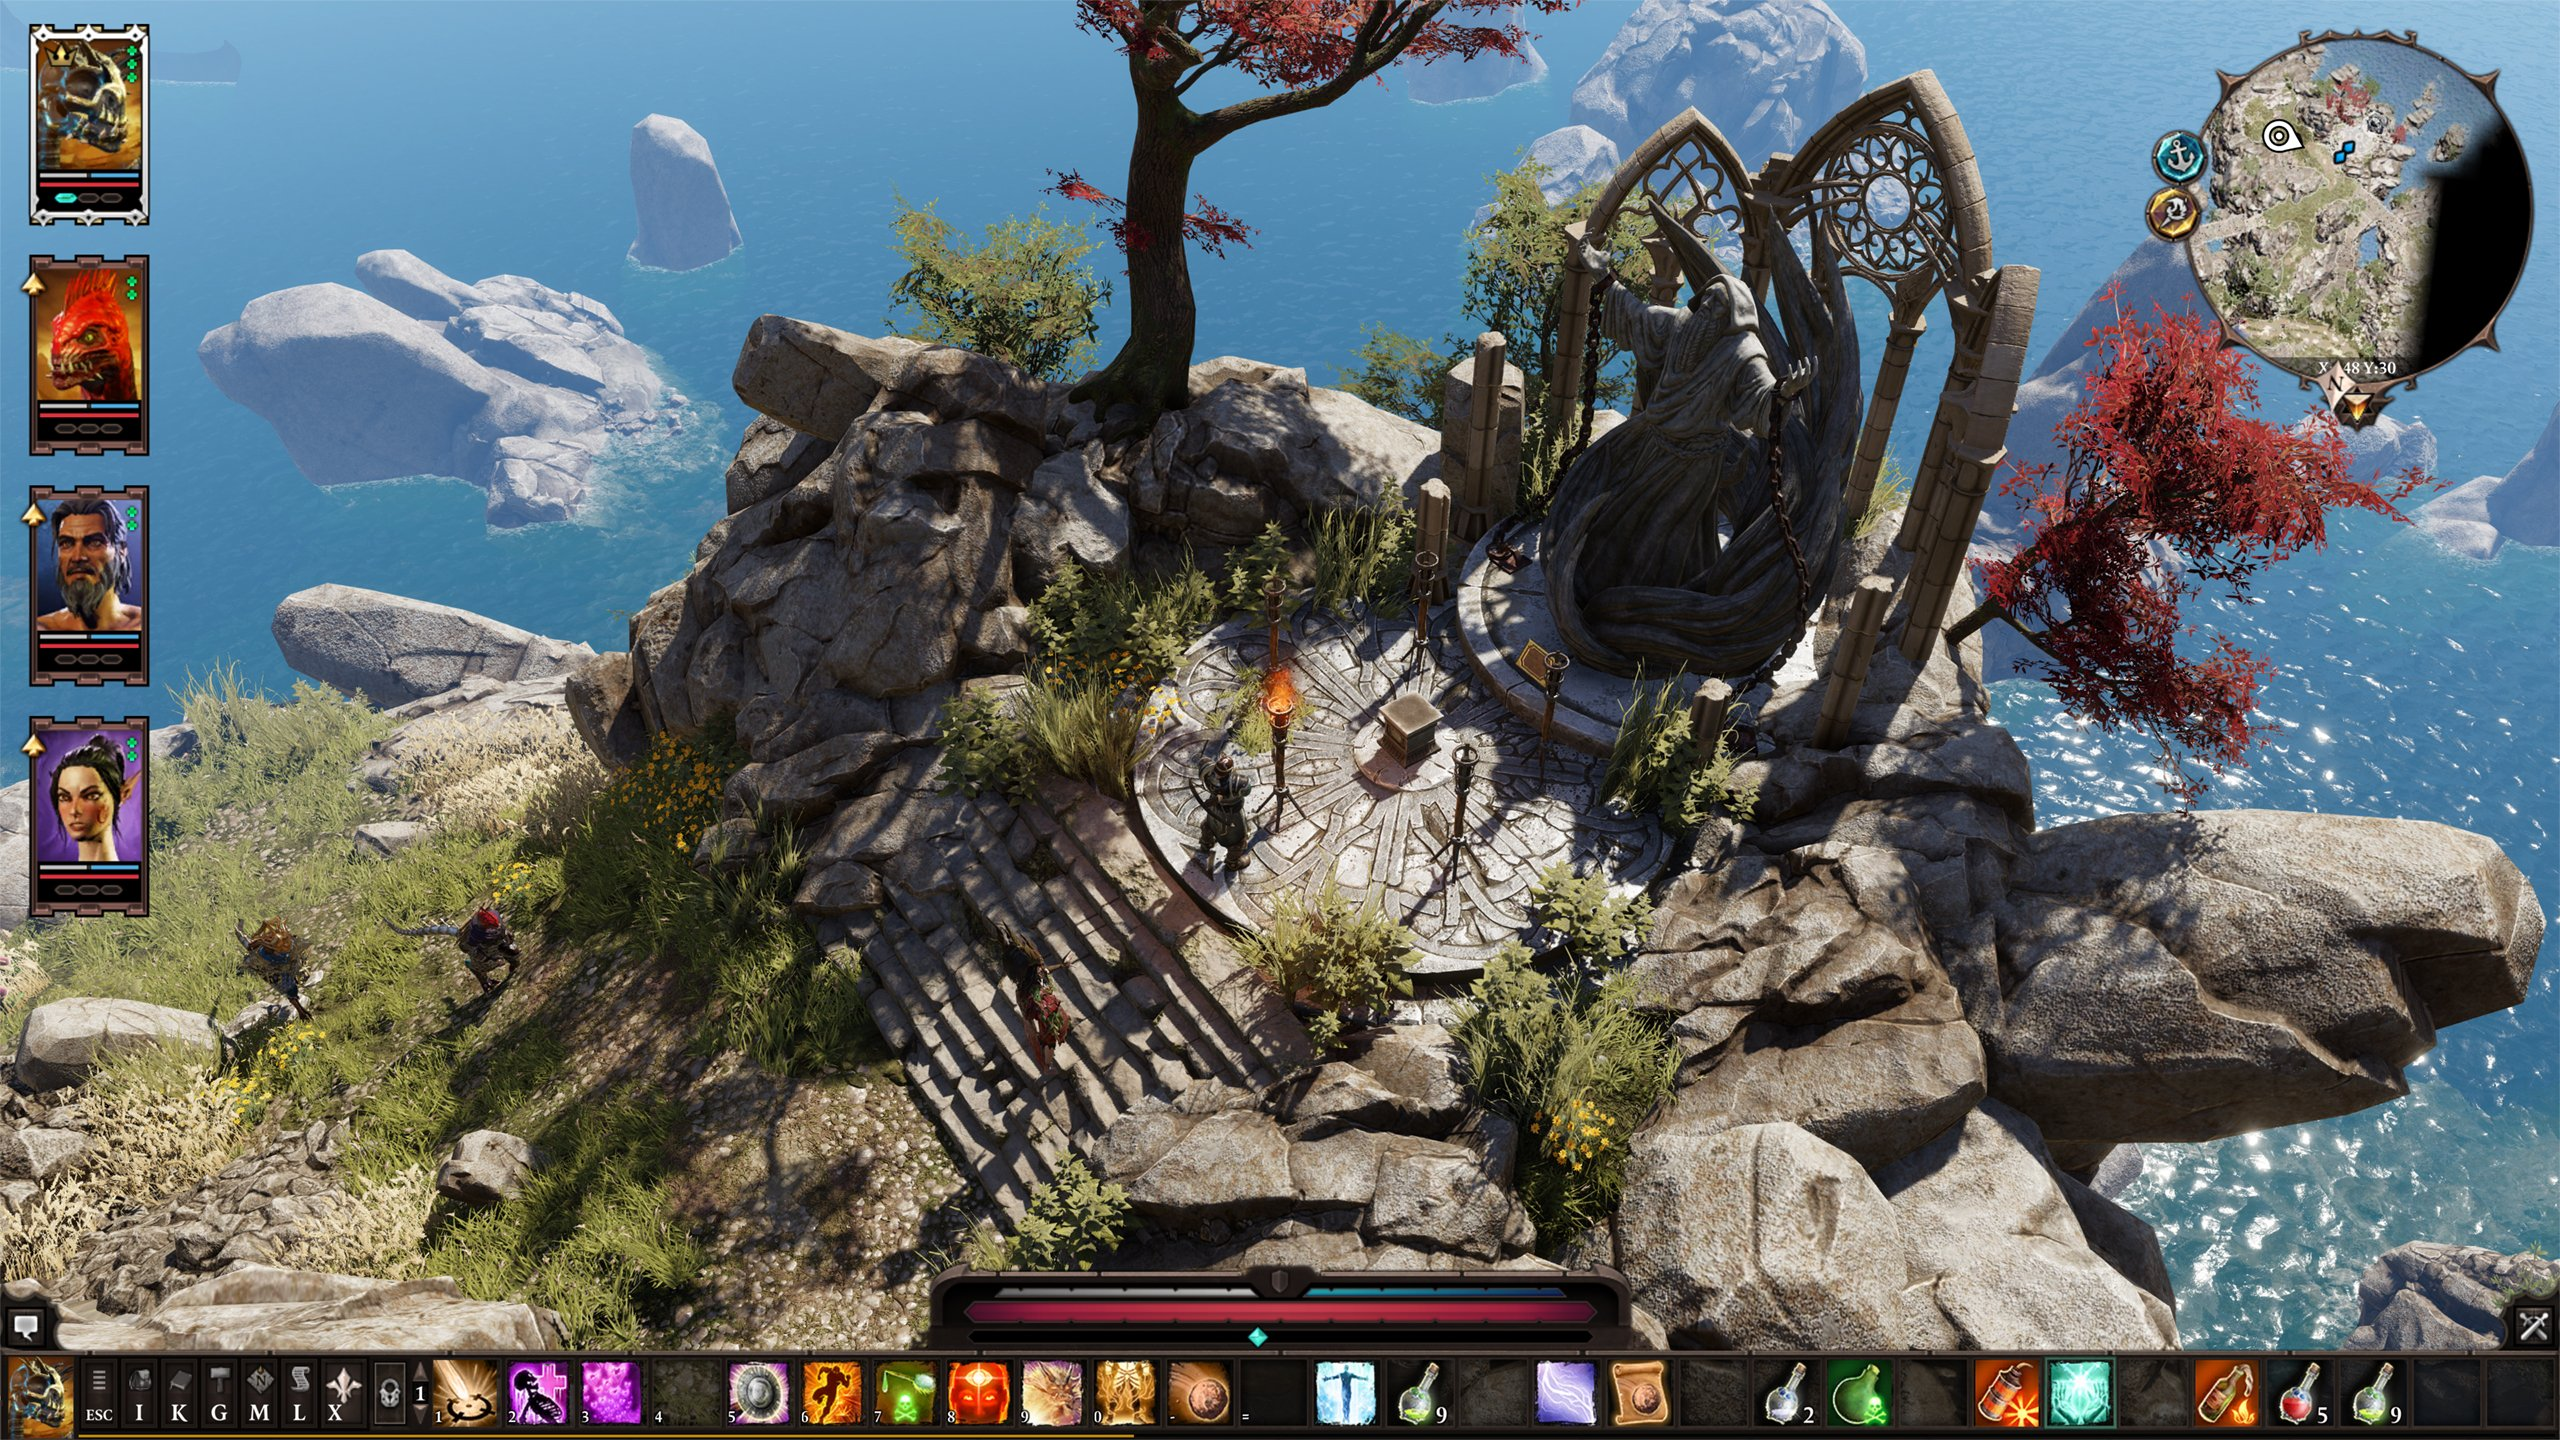 divinity-original-sin-2--screenshots-larian-studios-crpg-rpg-turn-based-co-op-fantasy-adventure-indie-pc-steam-gog